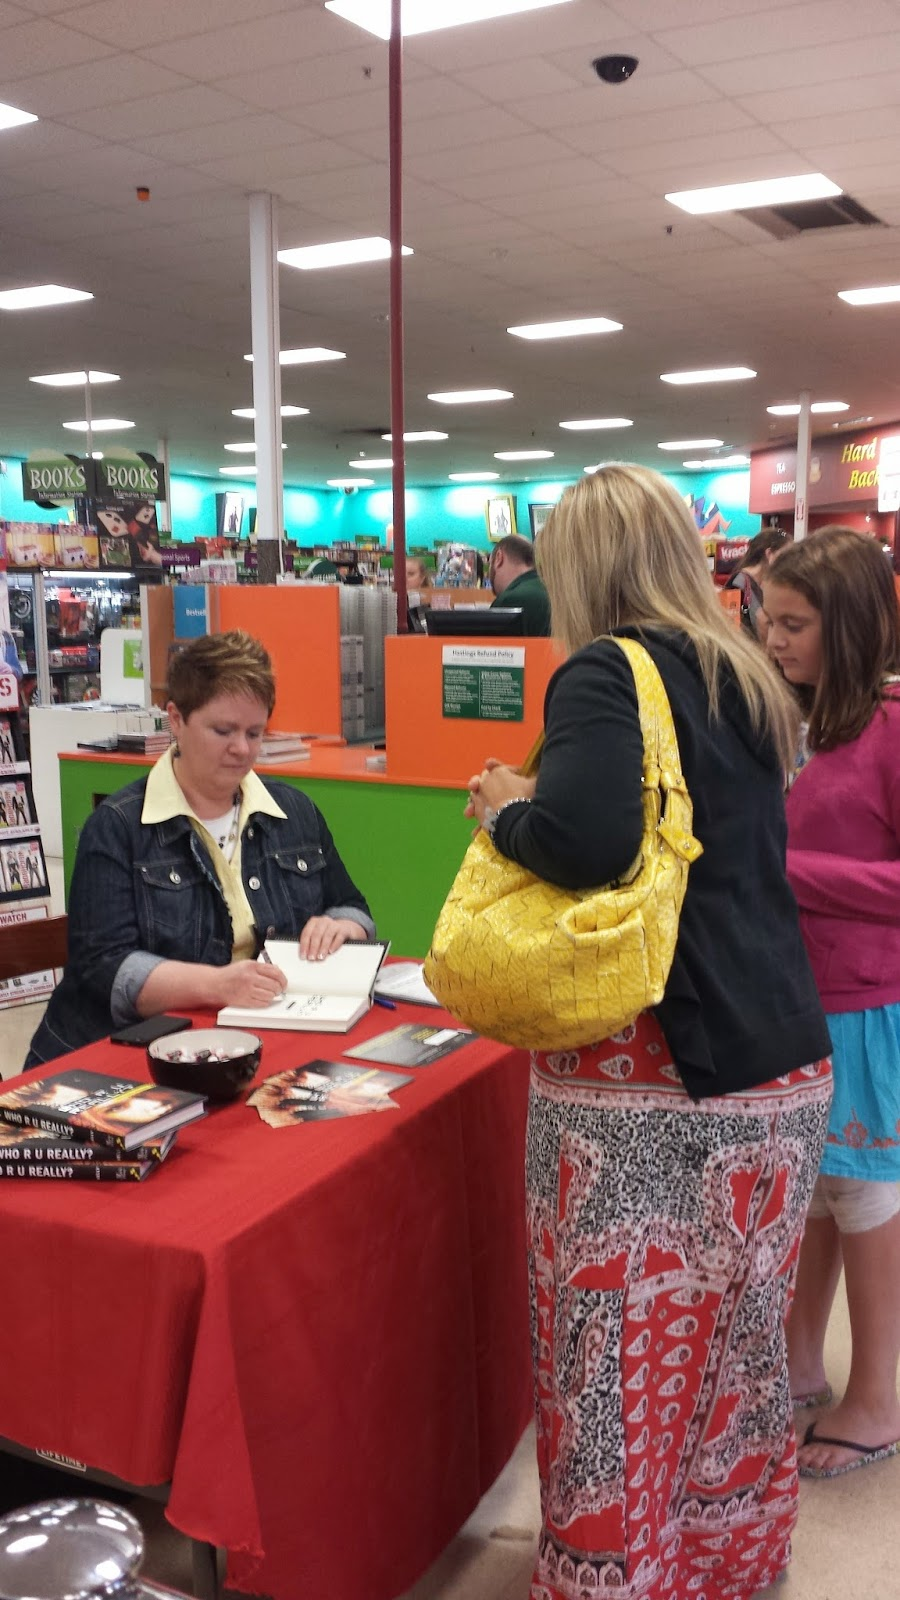 The Thrill Begins: 5 Marketing Tips for Book Signing Events